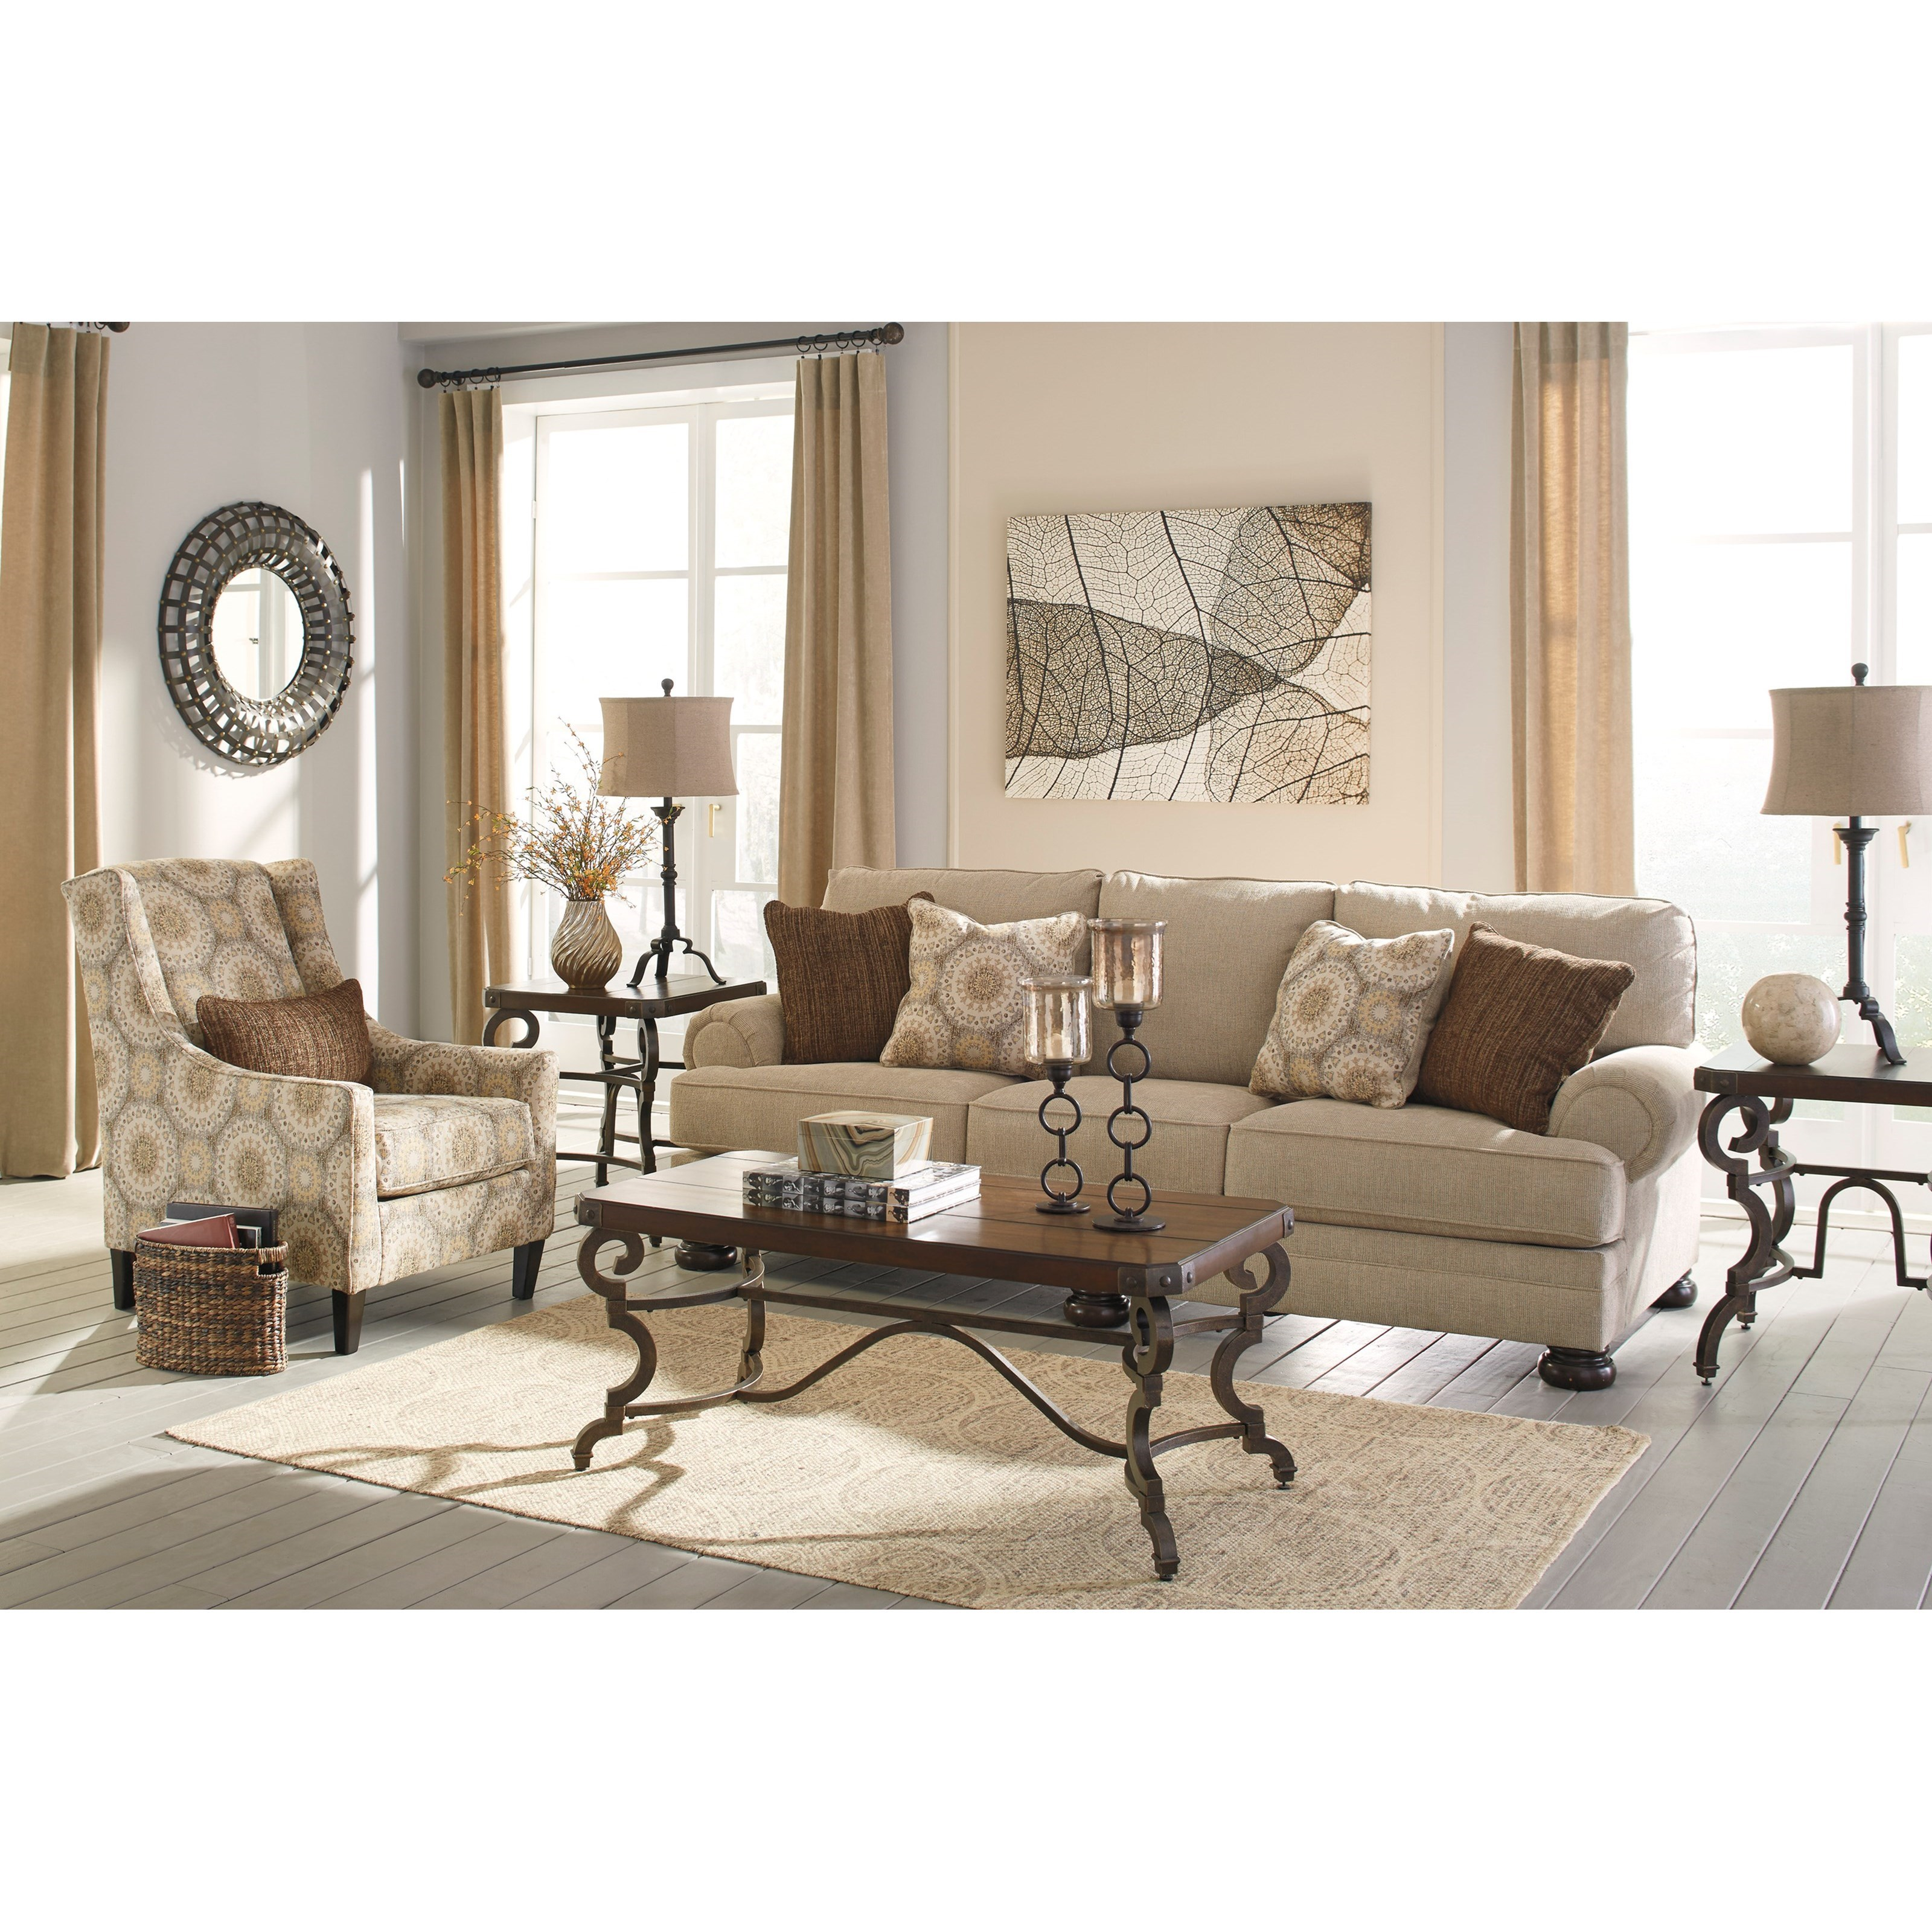 Benchcraft Quarry Hill Stationary Living Room Group - Item Number: 38701 Living Room Group 2